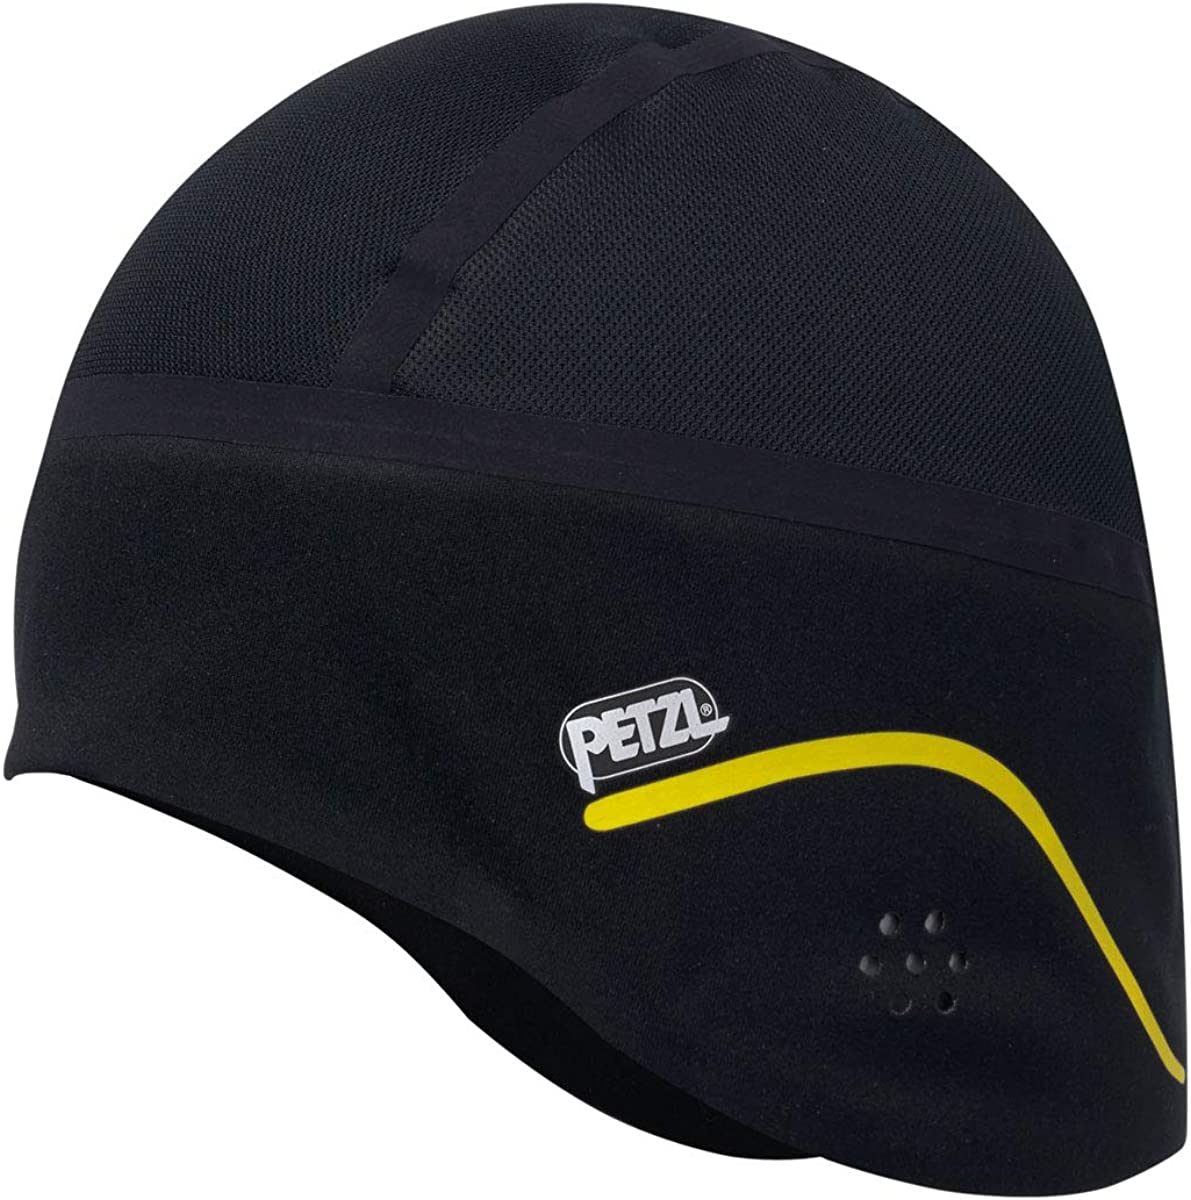 PETZL - Beanie Protective Cap For Cold And Wind : Sports & Outdoors